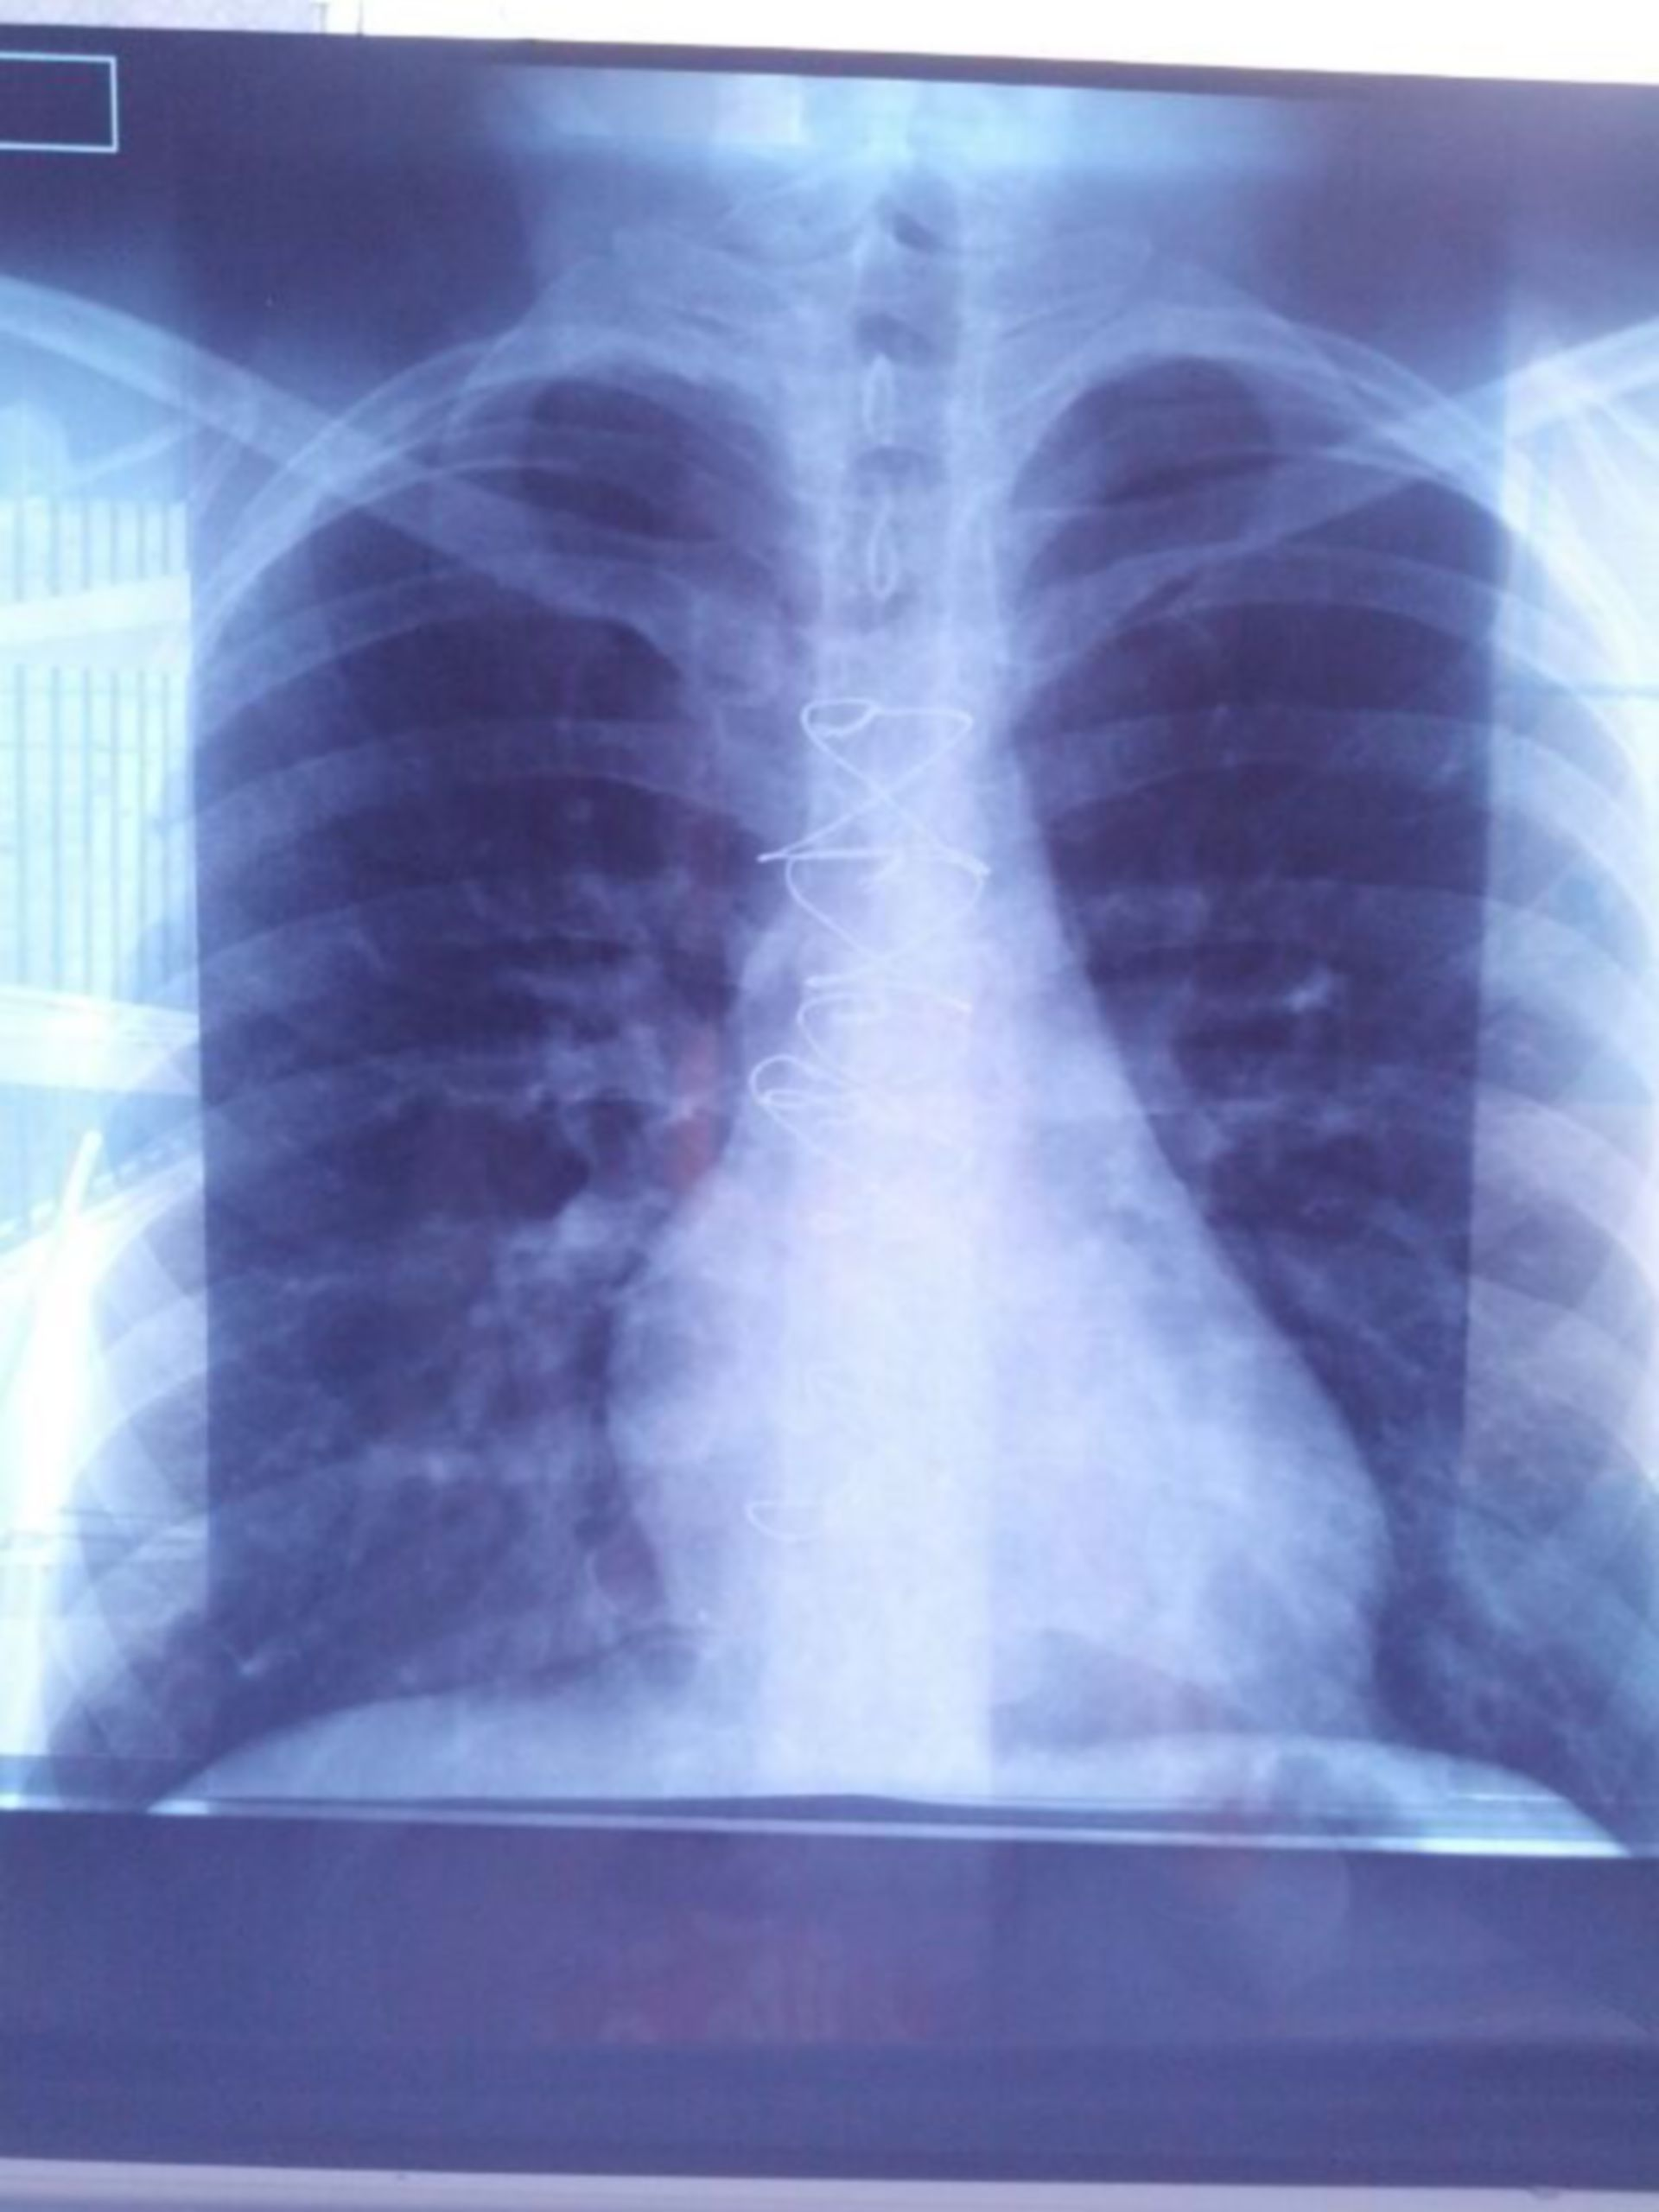 Chest radiograph 5 years after surgery